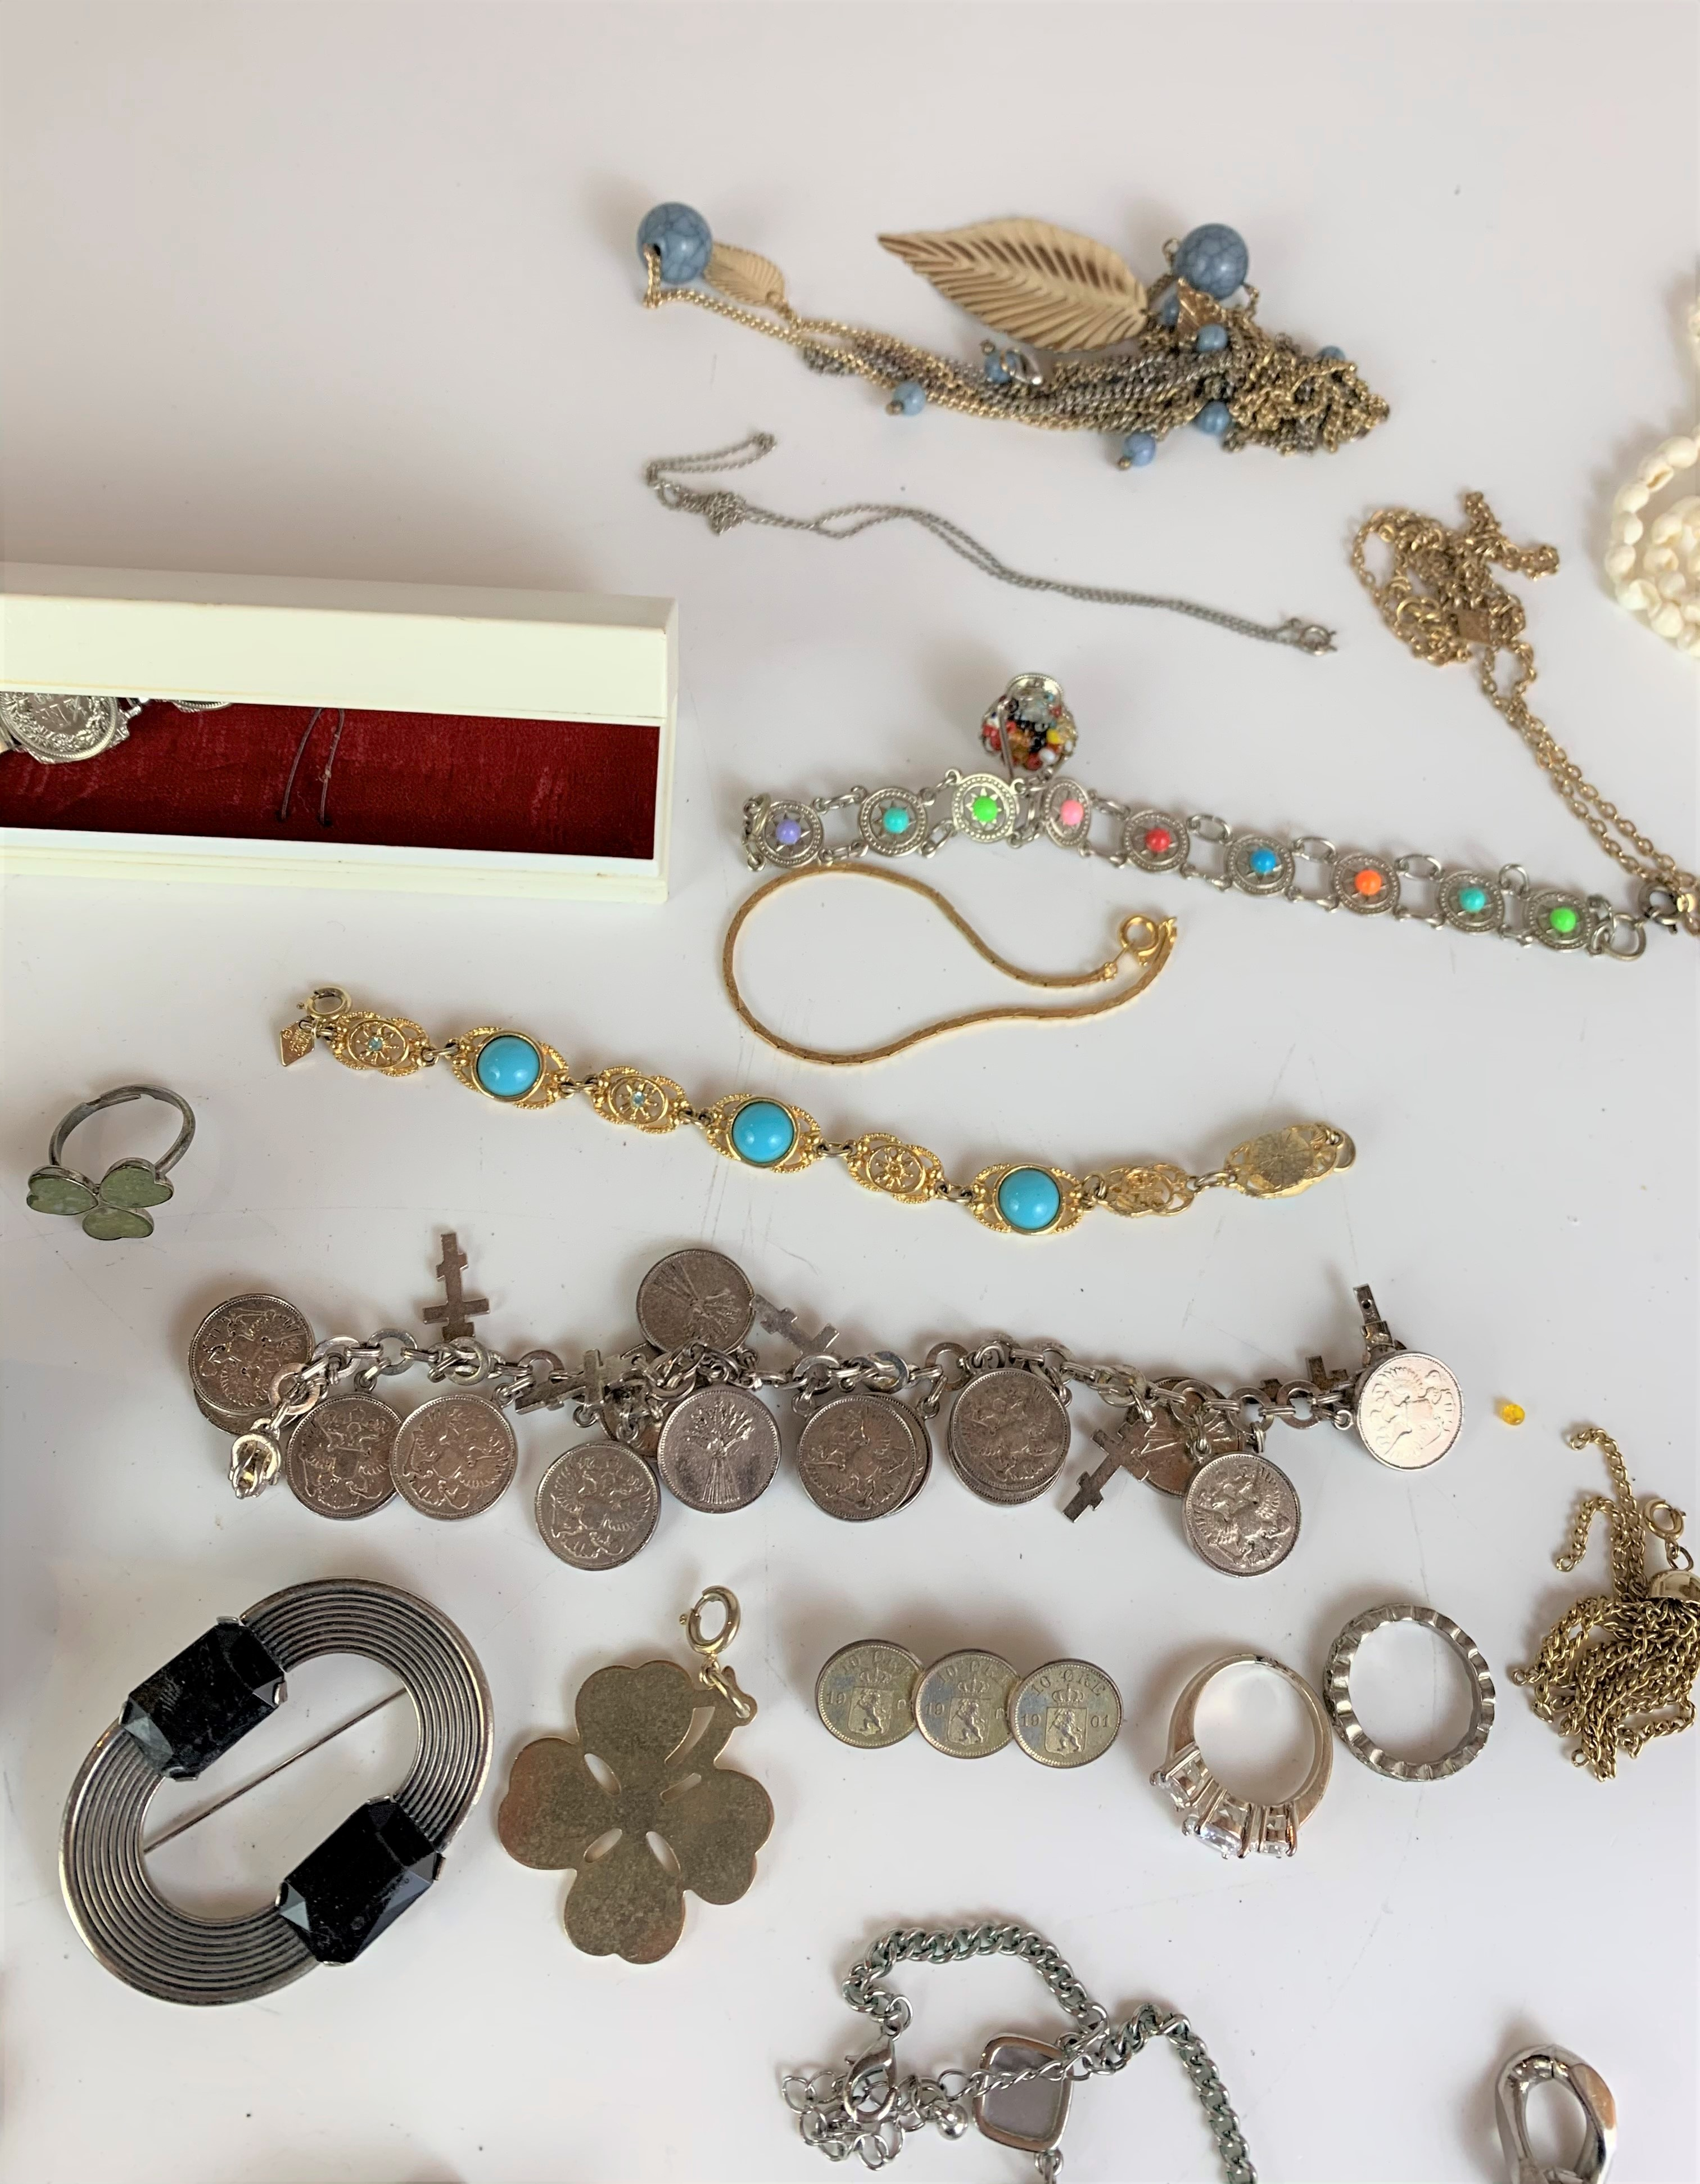 Large bag of assorted dress jewellery including watches, necklaces, bracelets, brooches etc. - Image 10 of 10